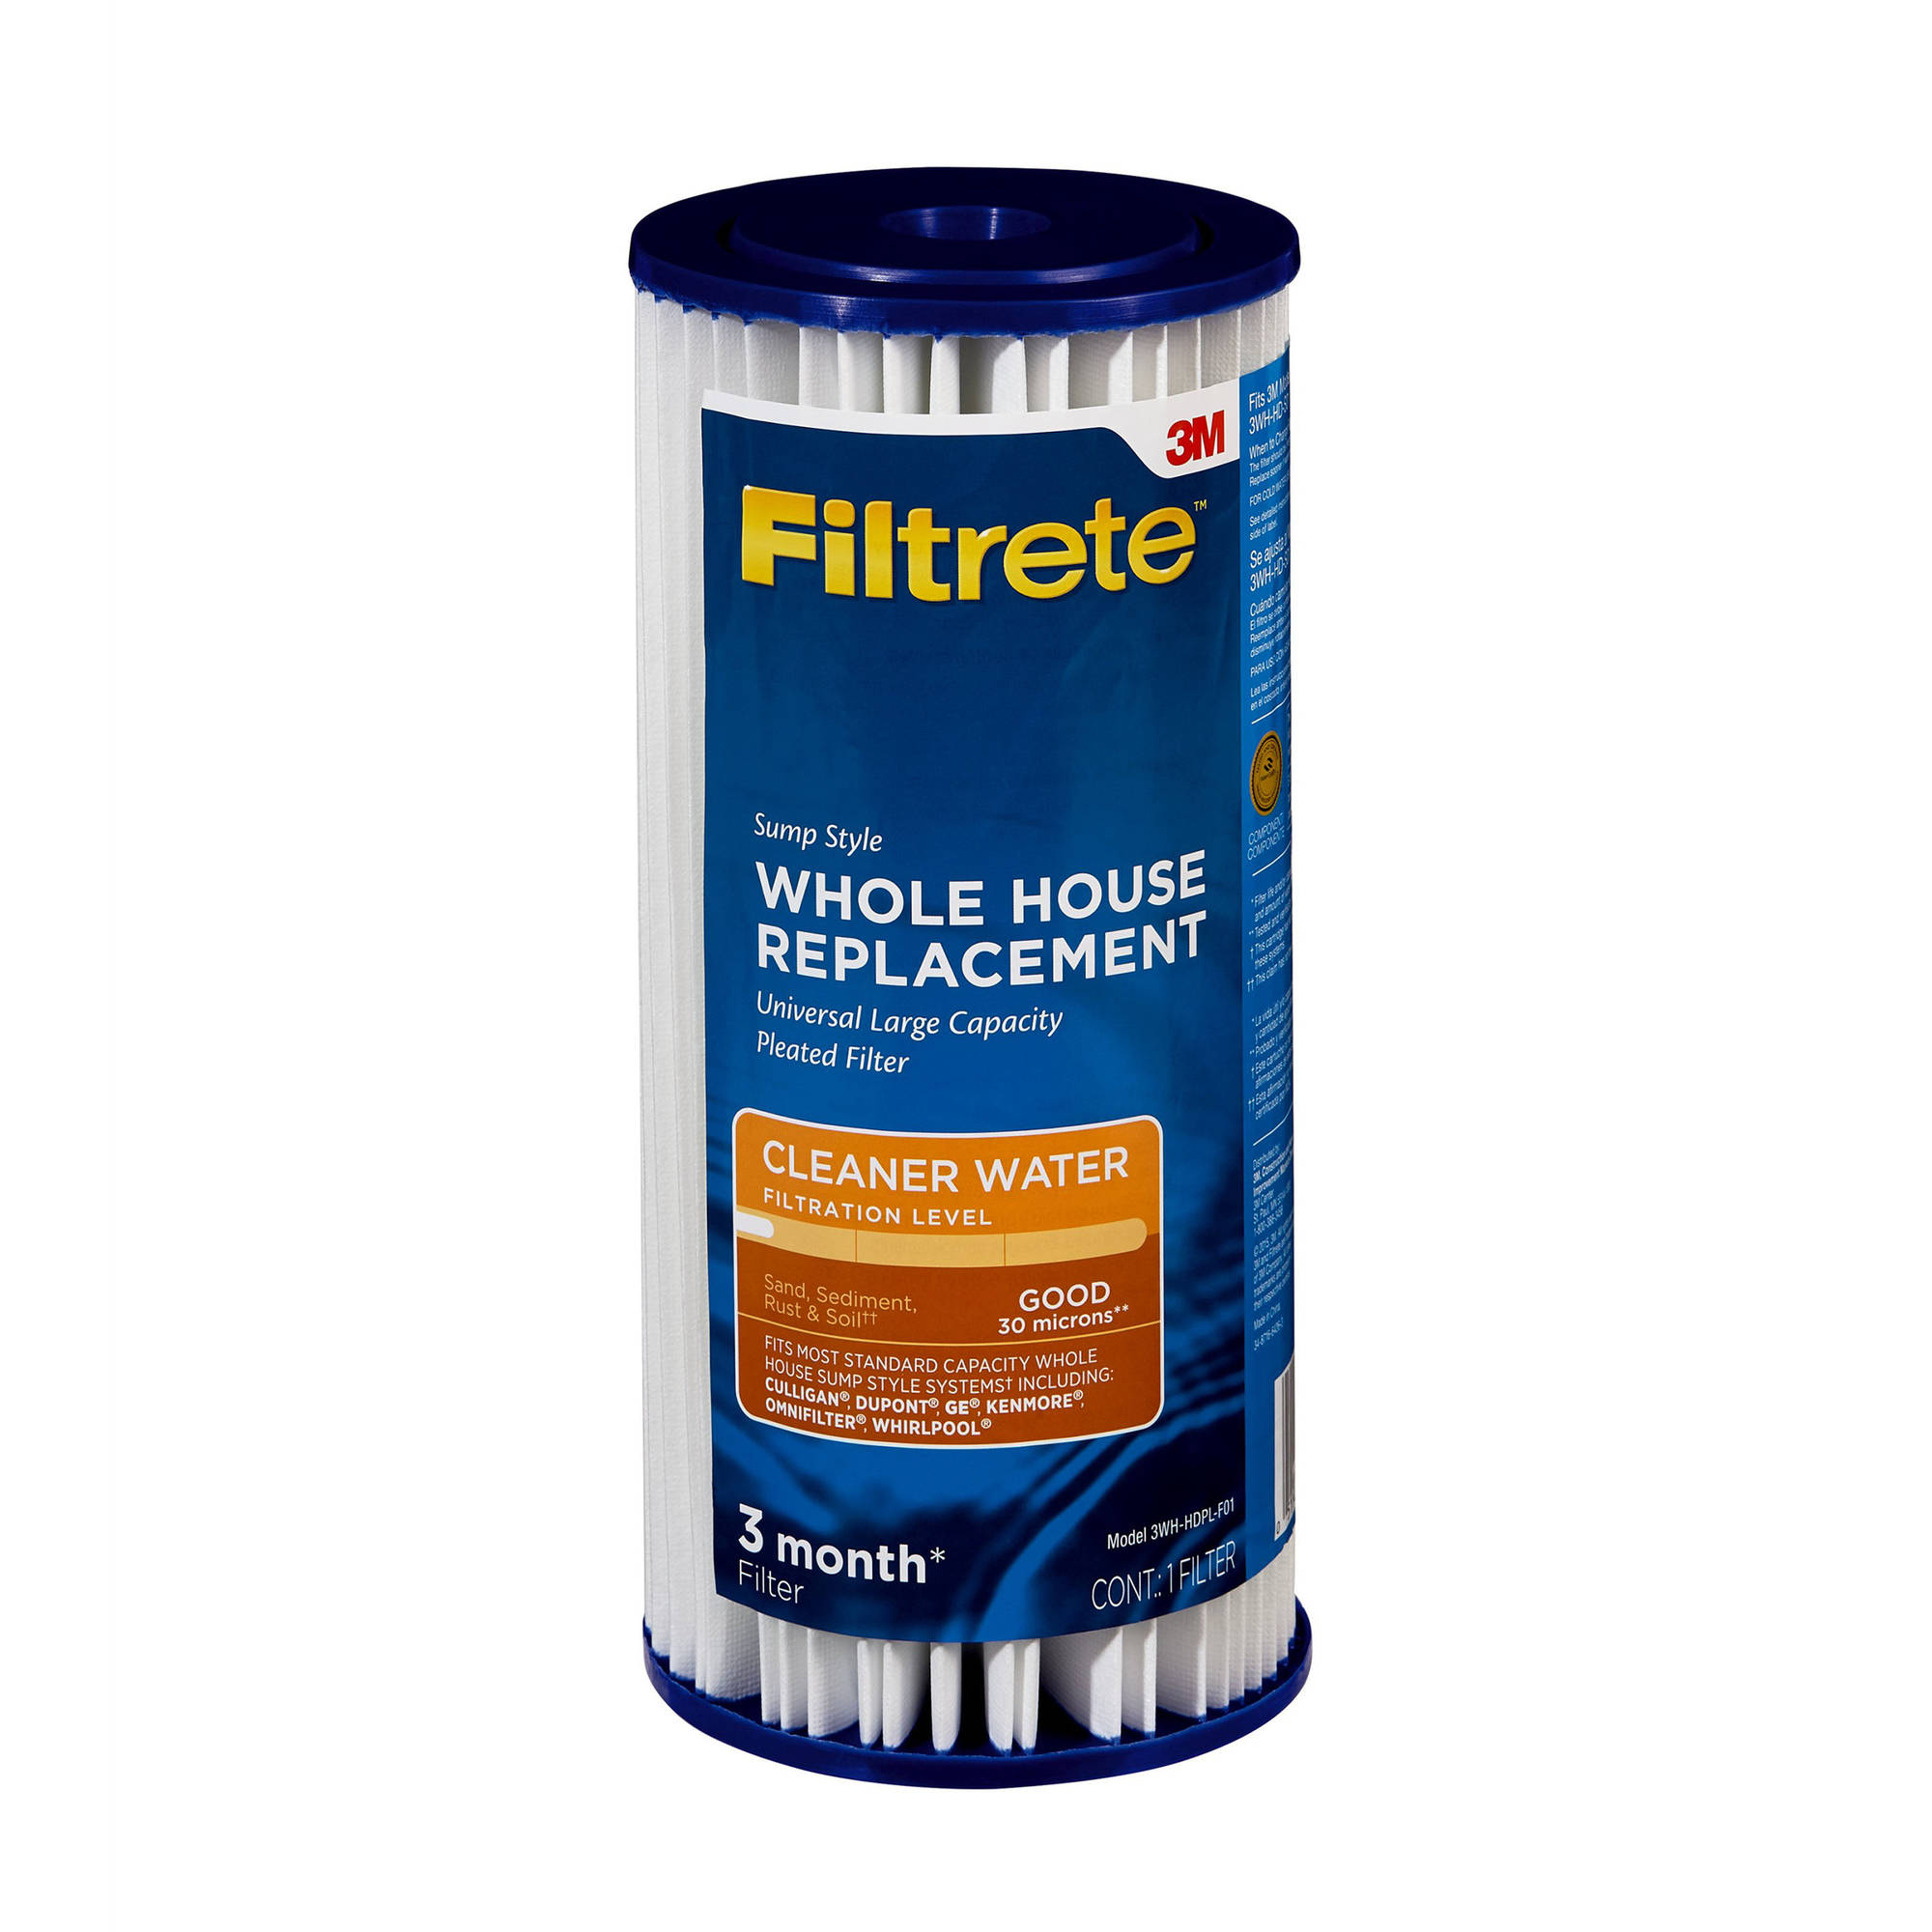 "Filtrete"" Large Capacity, Pleated Replacement Filter, Sump Style (sediment - good) - 1 pack"